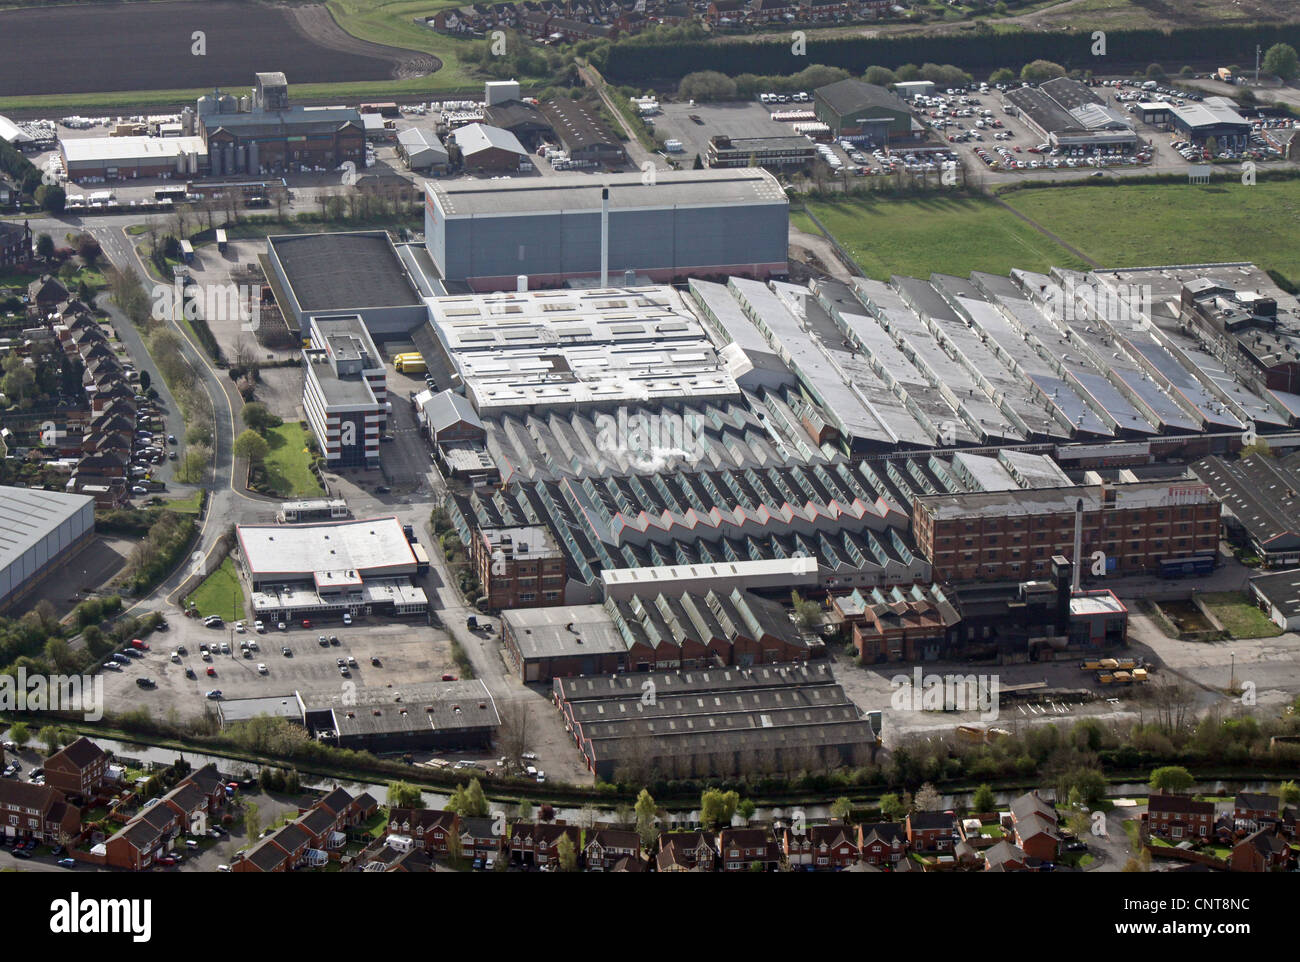 aerial view of a factory on Beech Avenue, Burton on Trent, Staffordshire - Stock Image